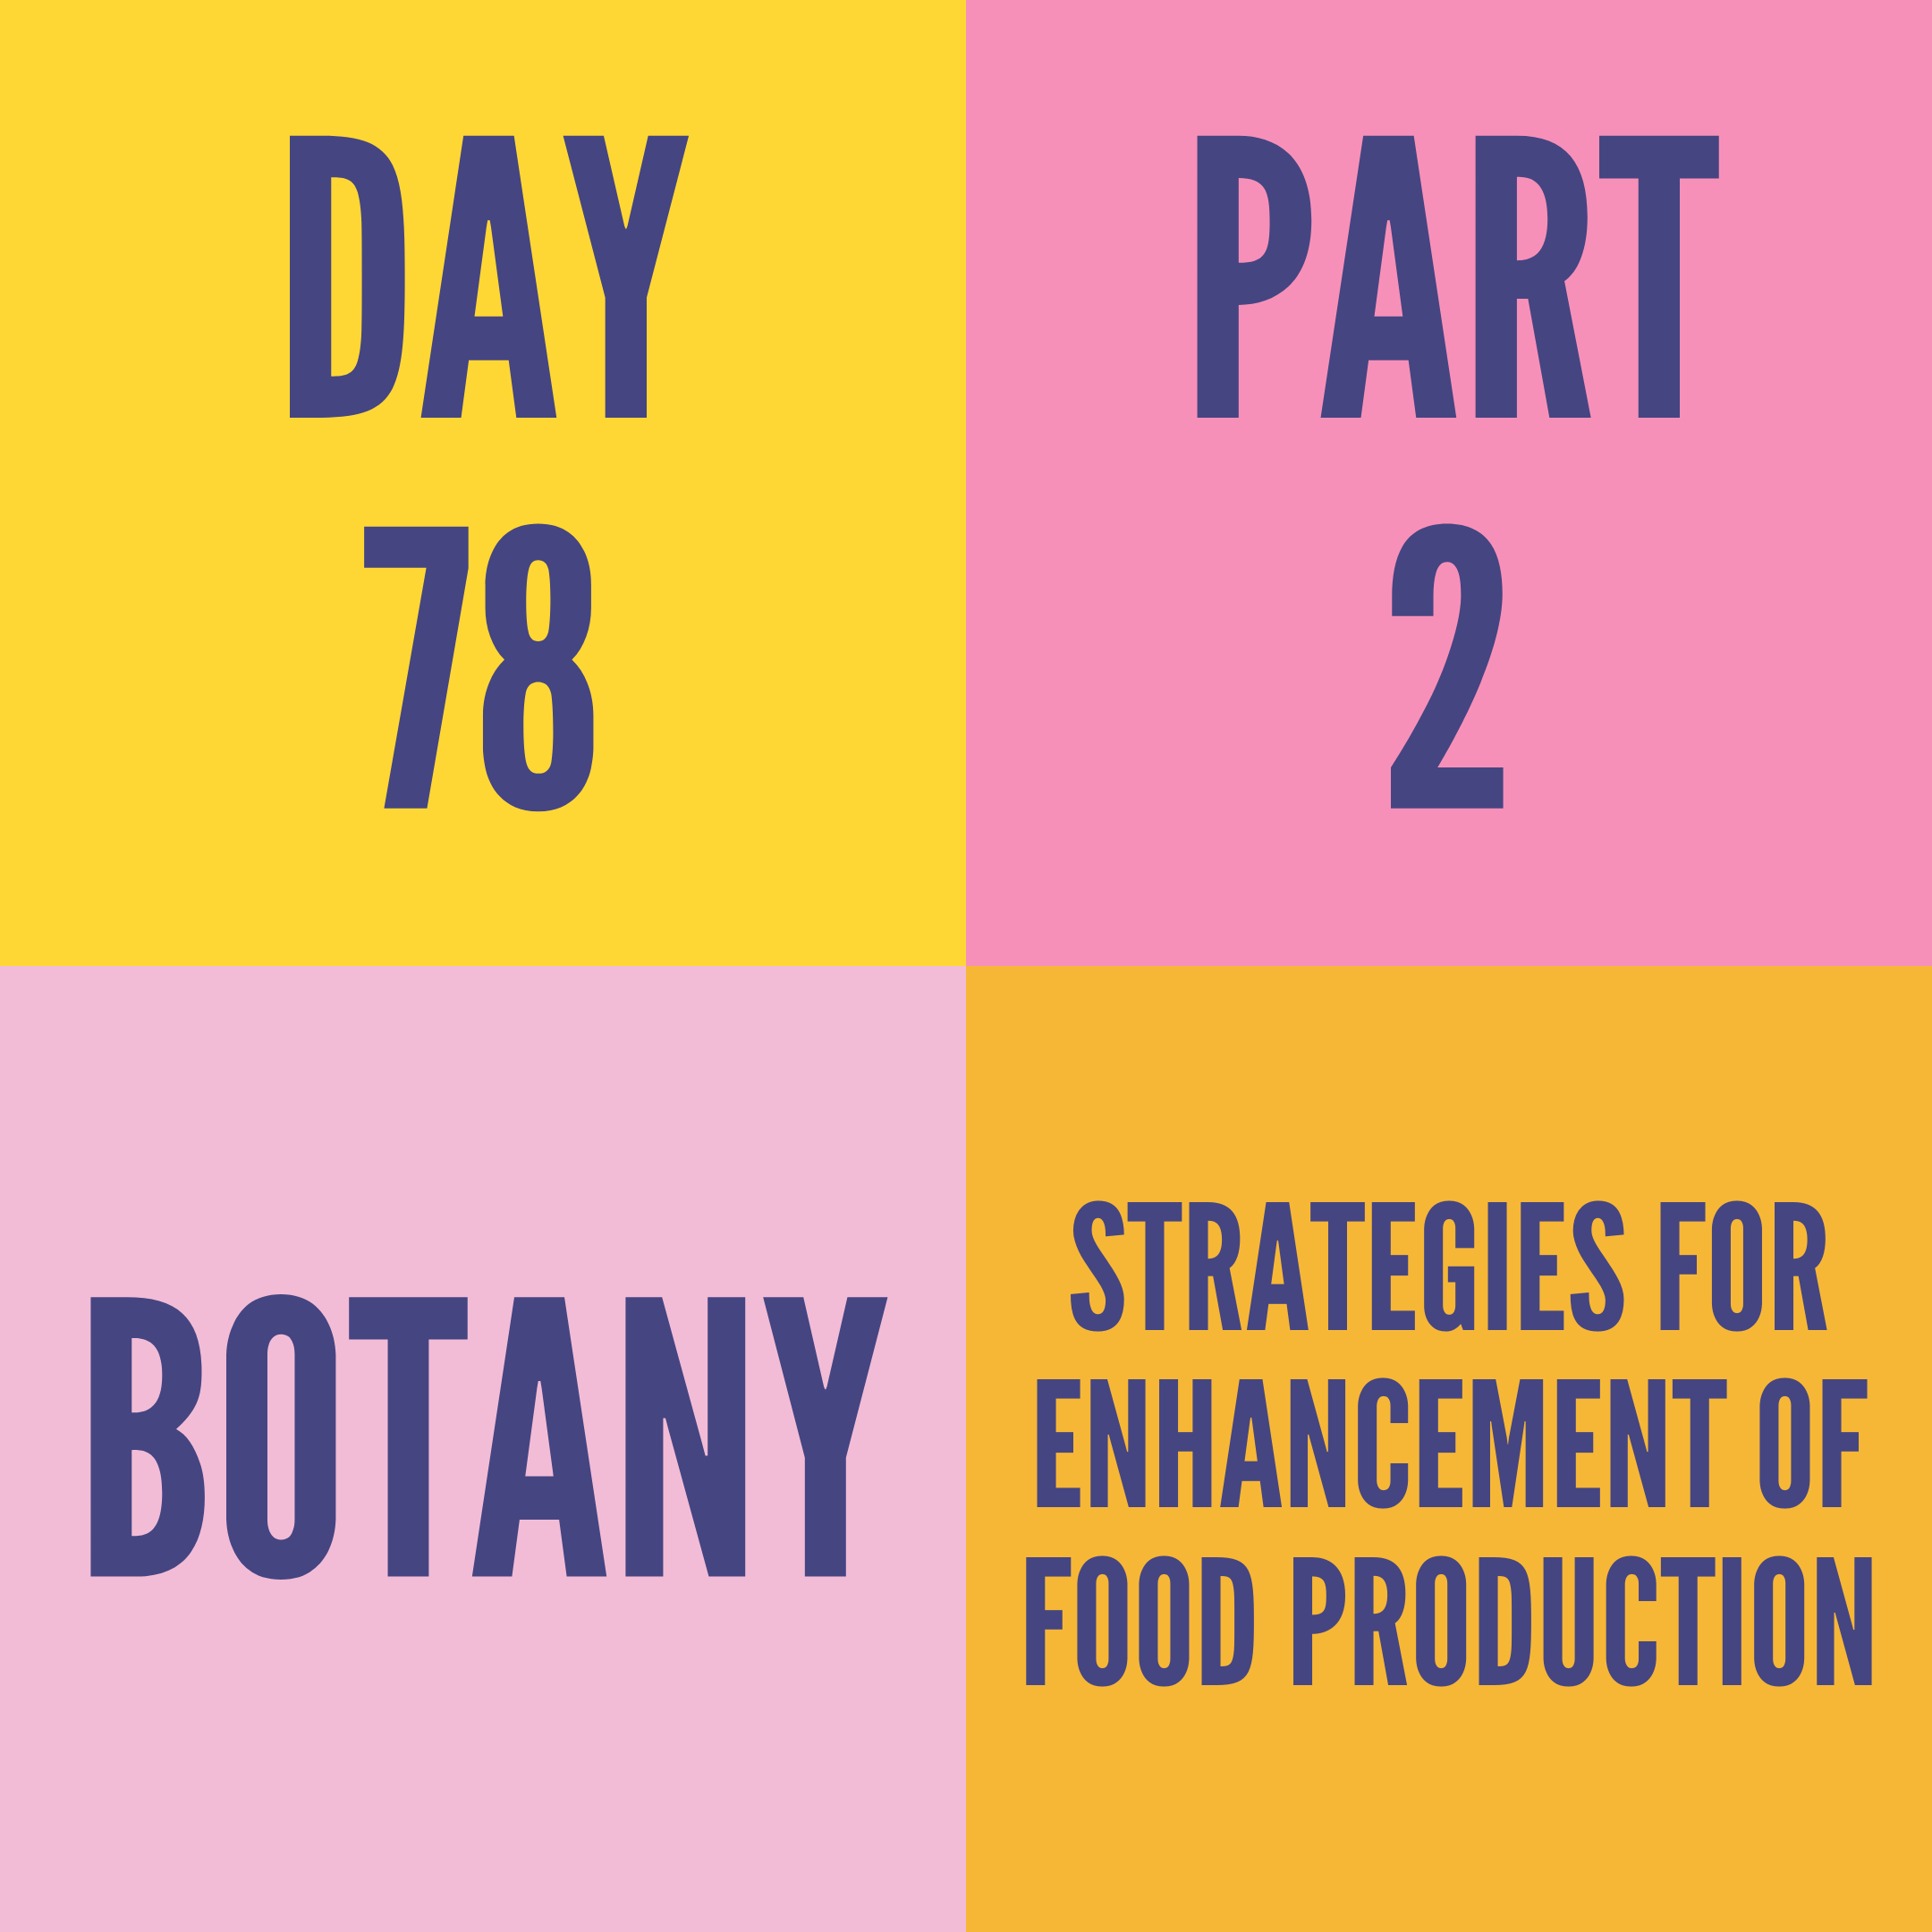 DAY-78 PART-2 STRATEGIES FOR ENHANCEMENT OF FOOD PRODUCTION